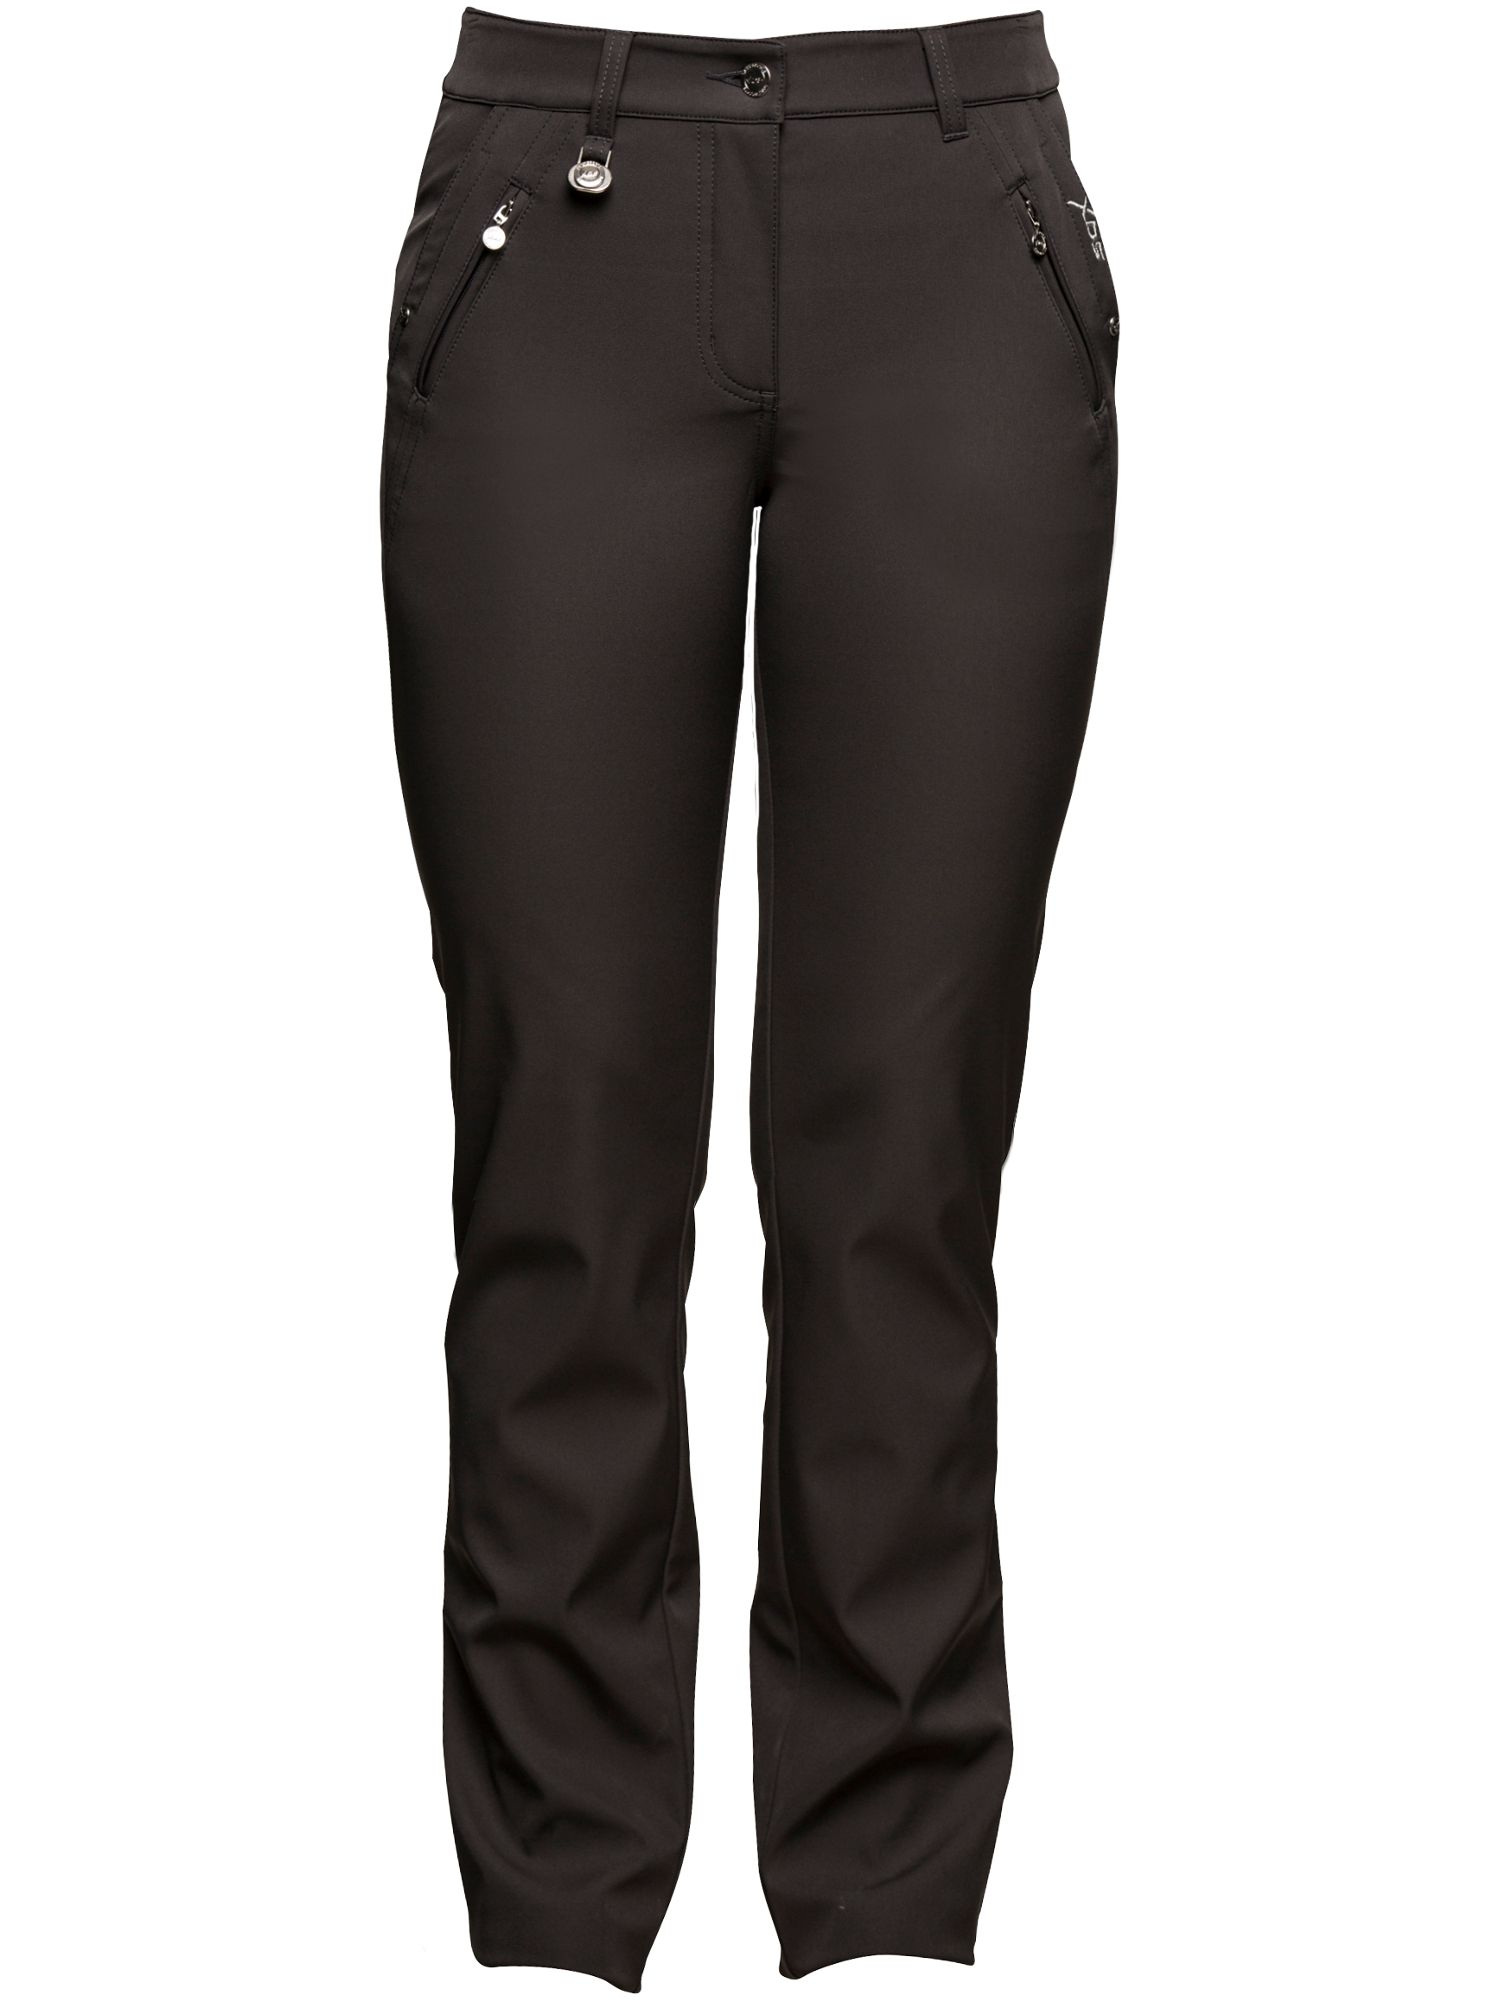 Daily Sports Daily Sports Irene Trousers, Charcoal